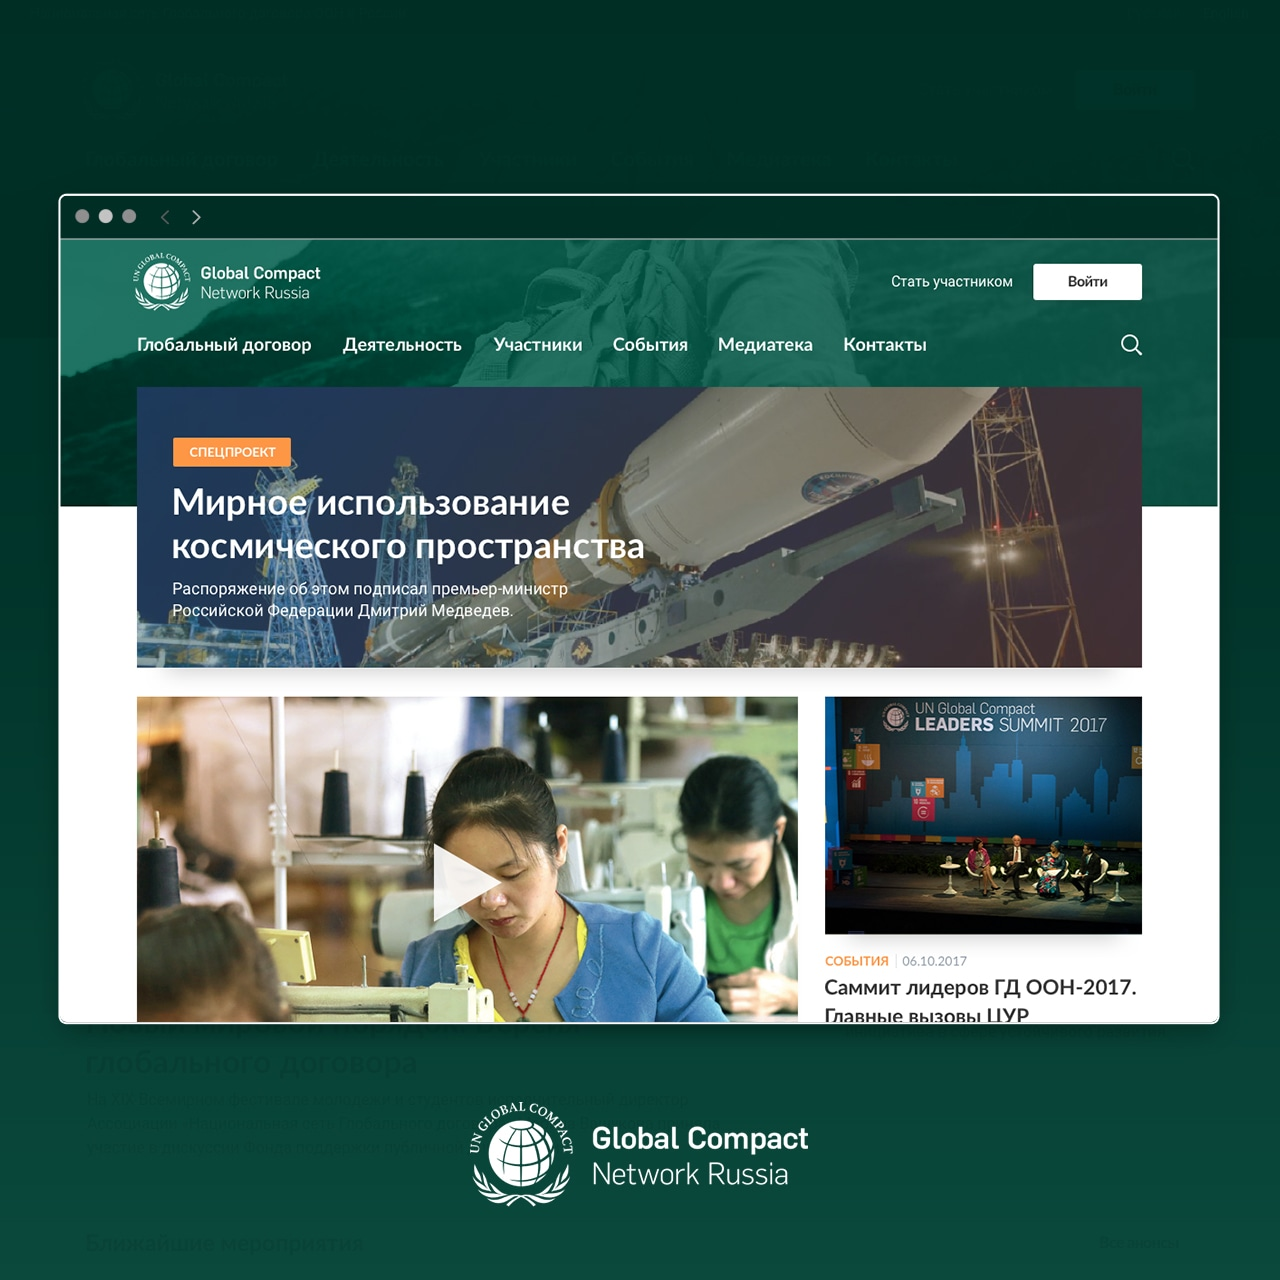 Global Compact Russia Website